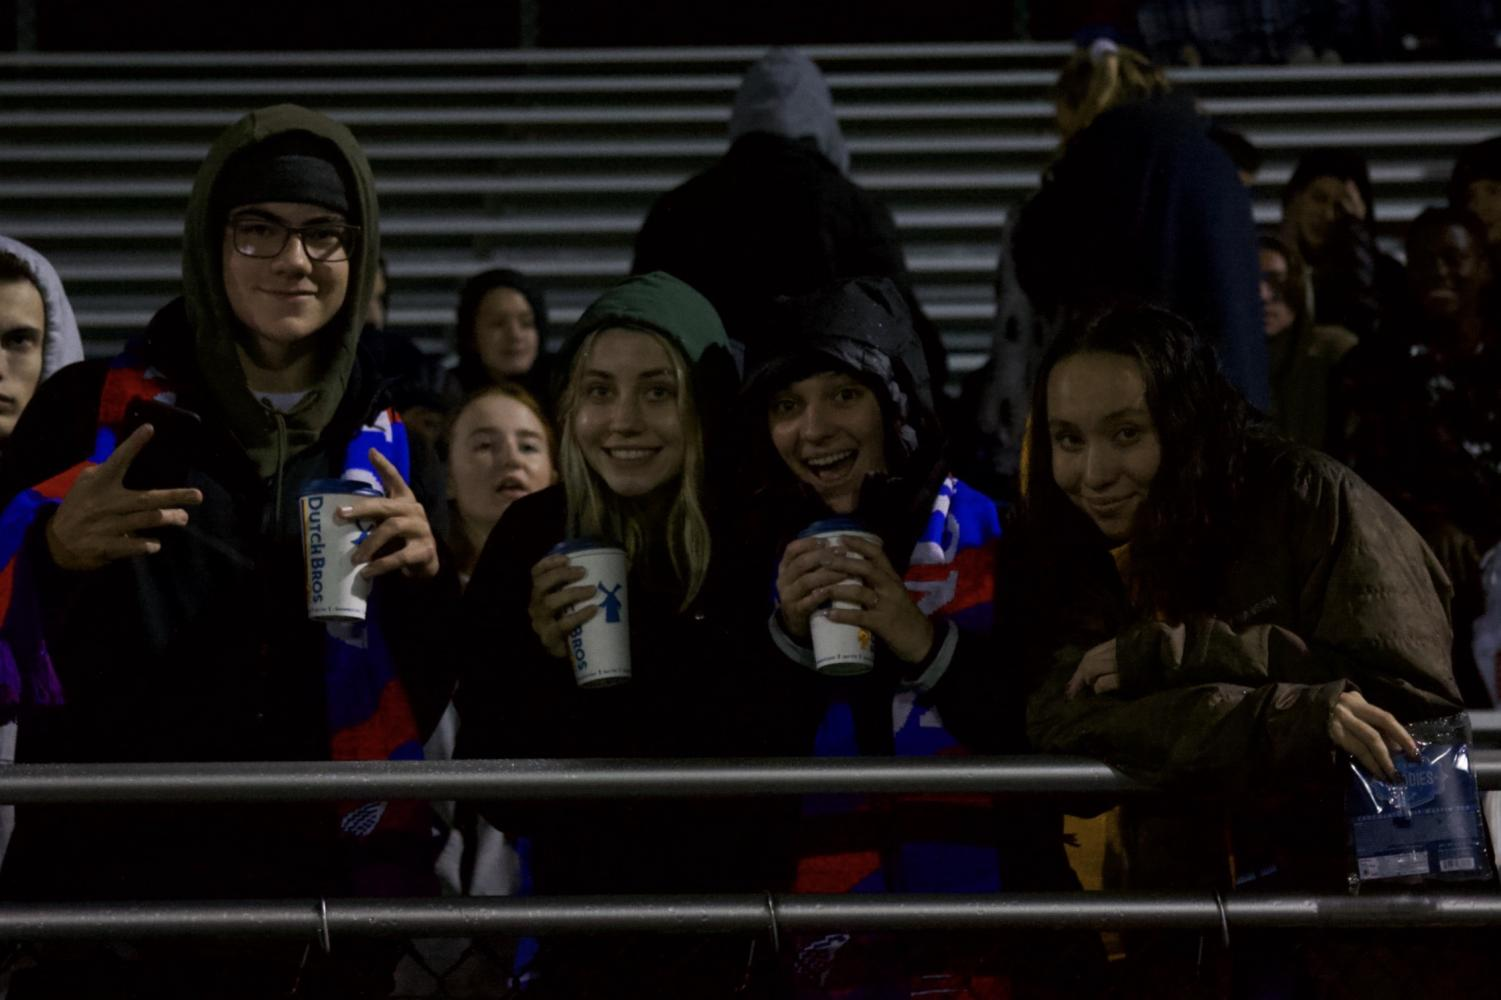 Students+cheering+on+the+soccer+team+in+the+rain.